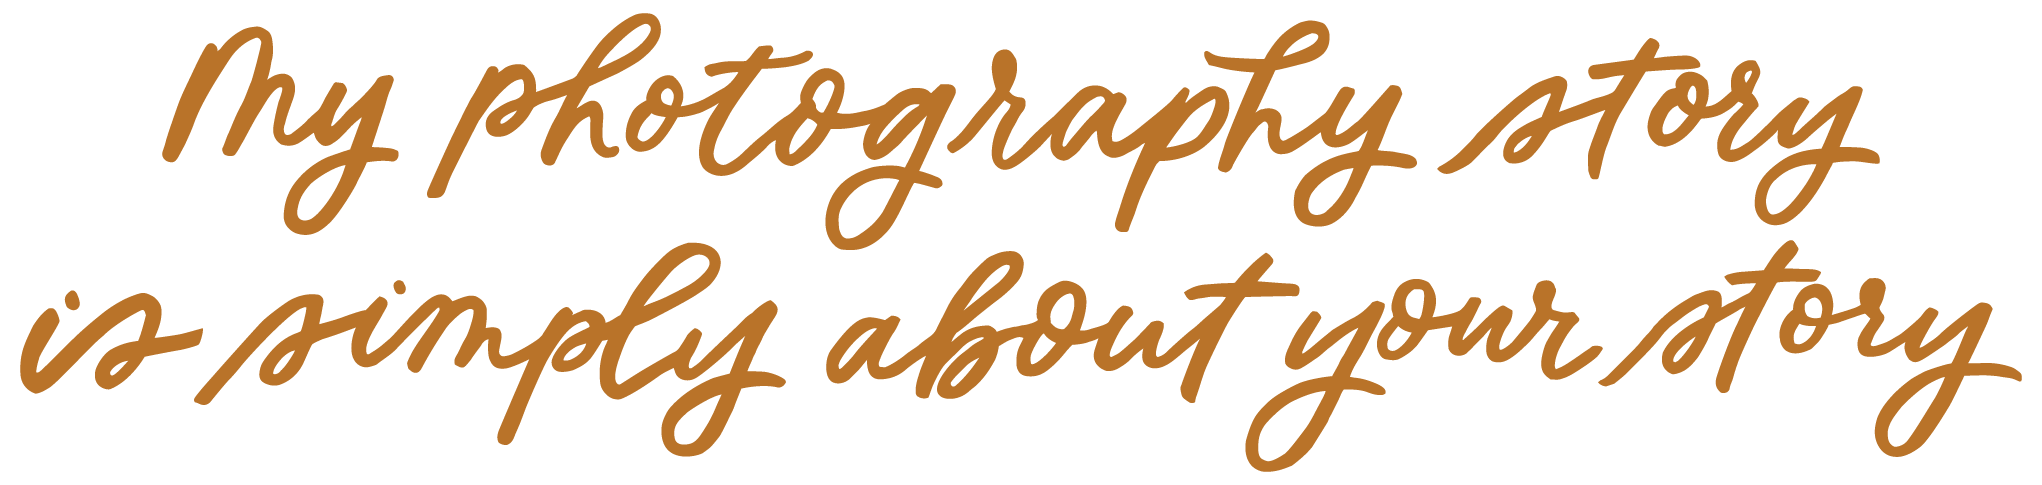 Calligraphy-MyStory.png